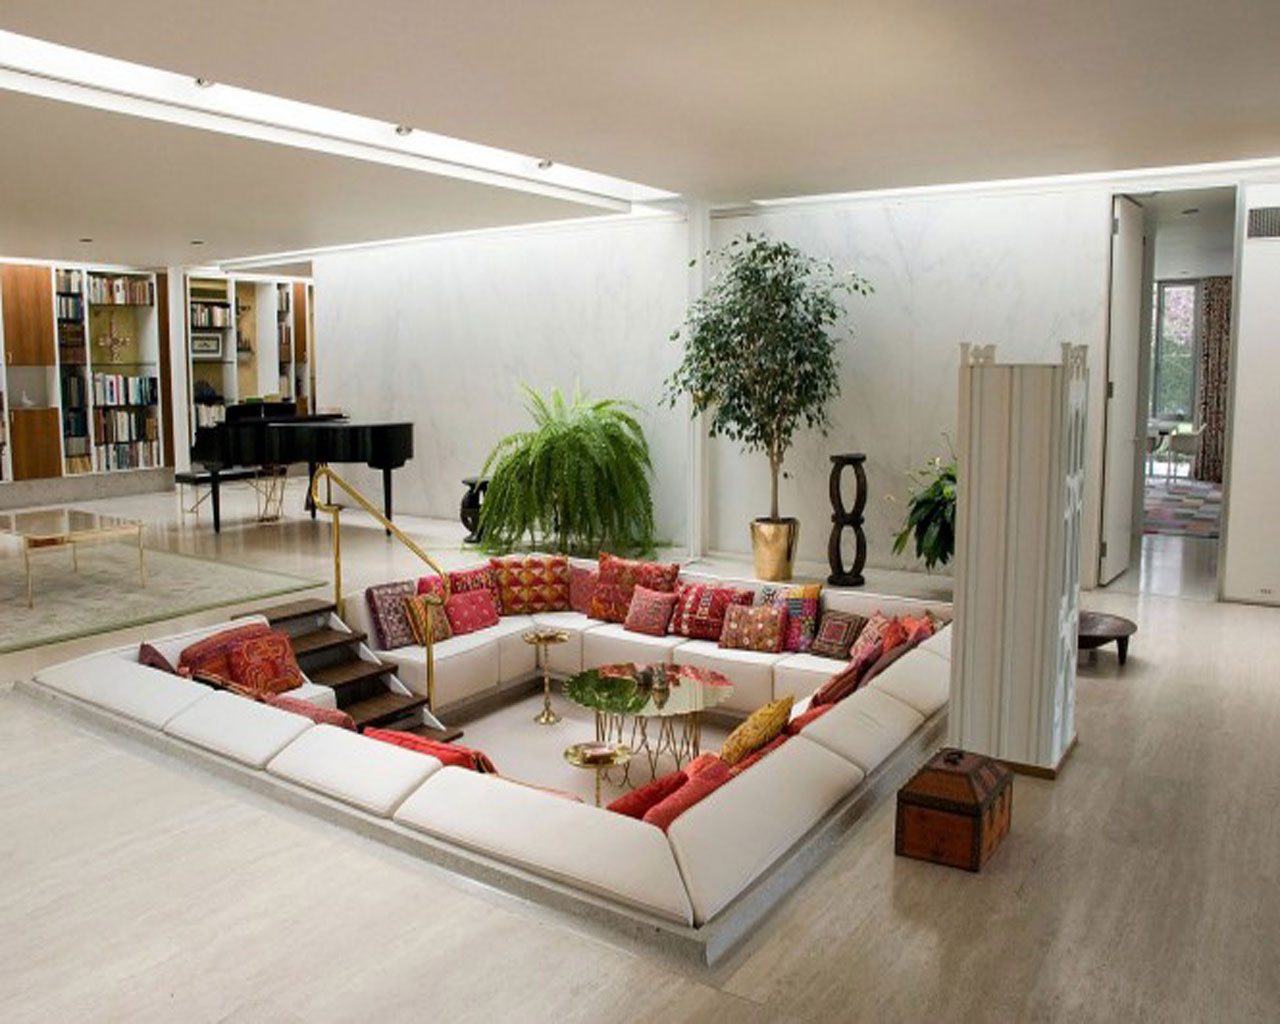 How can i apply feng shui principles to decorate my living for Apartment design consultant